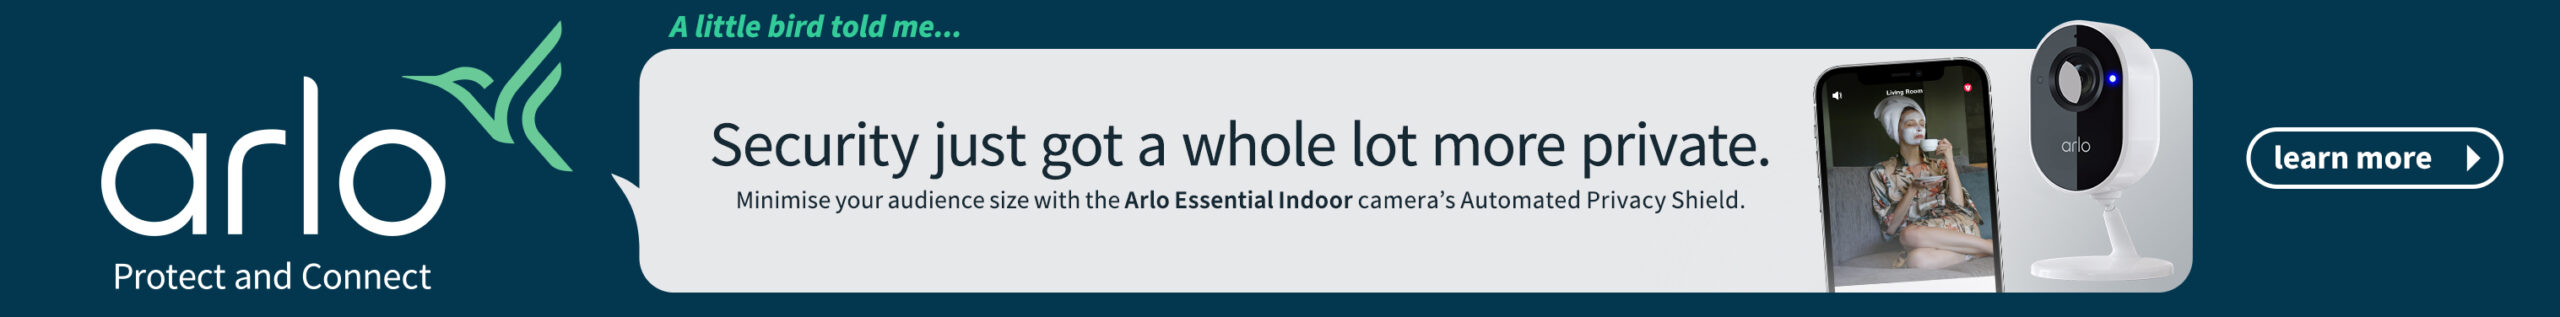 ARL0355 Arlo ESS Indoor Generic Banner 728x90 V4 scaled Vaio Notebooks The Only Thing Sony Is The Logo